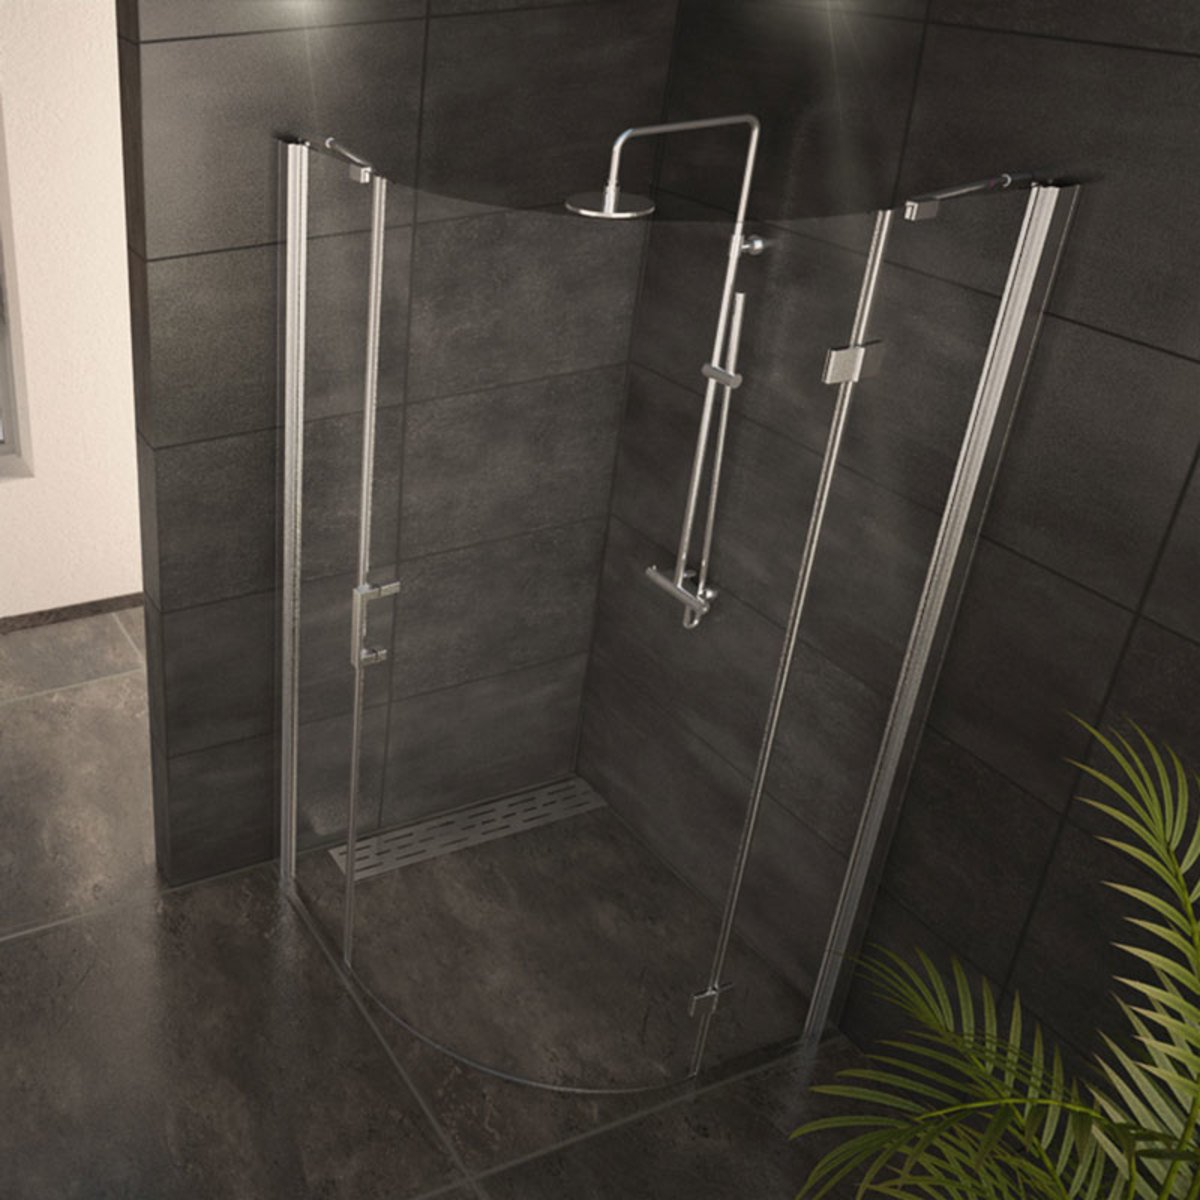 adema glass cabine de douche quart de rond avec 1 porte pivotante 90x90x200cm vitre claire. Black Bedroom Furniture Sets. Home Design Ideas